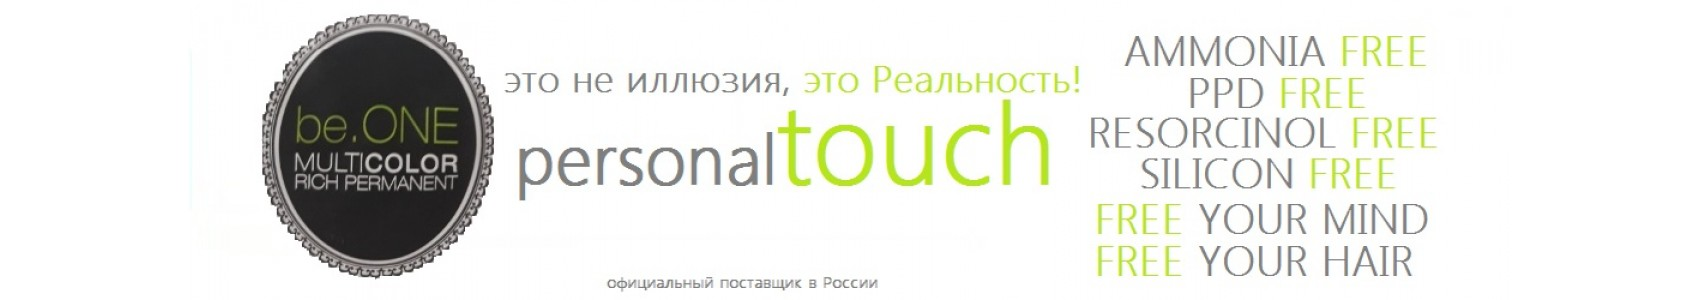 Be.One Personal Touch